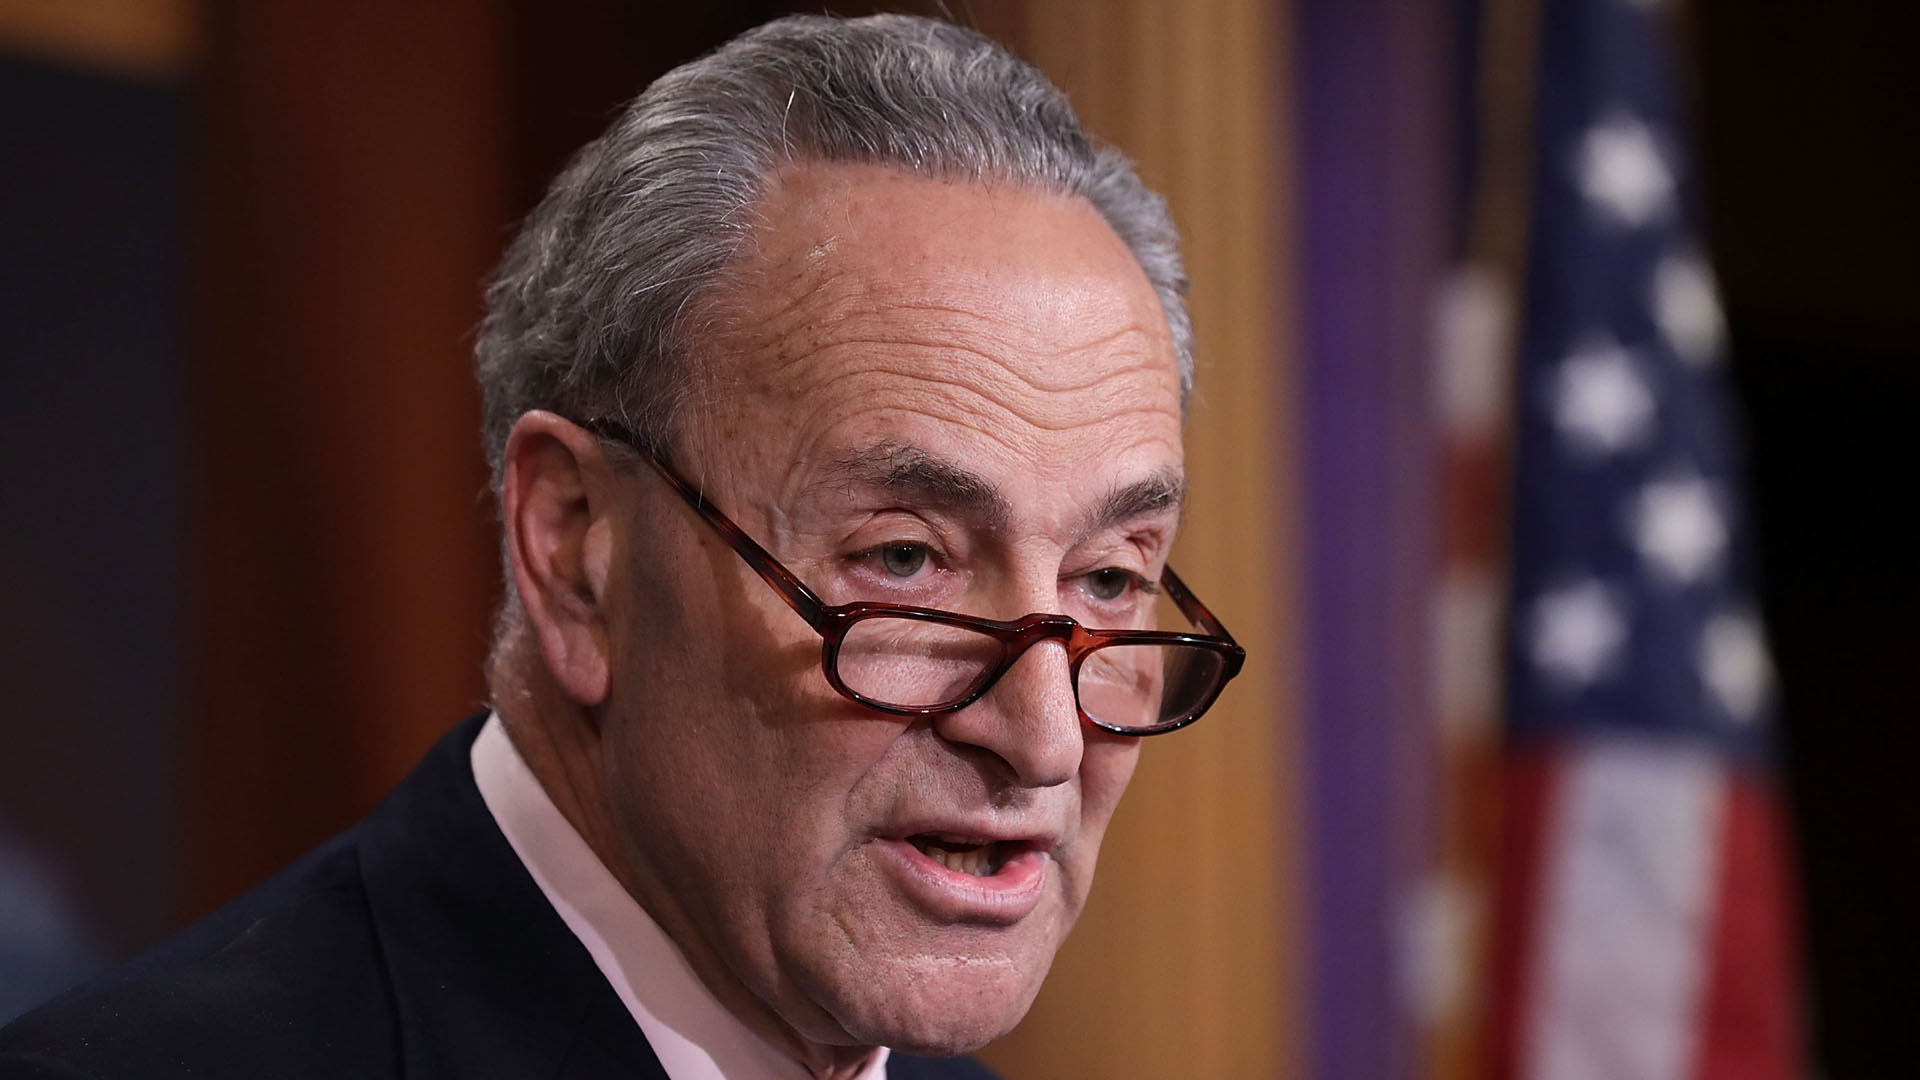 Chuck Schumer speaks on Capitol Hill05477352-159532-159532